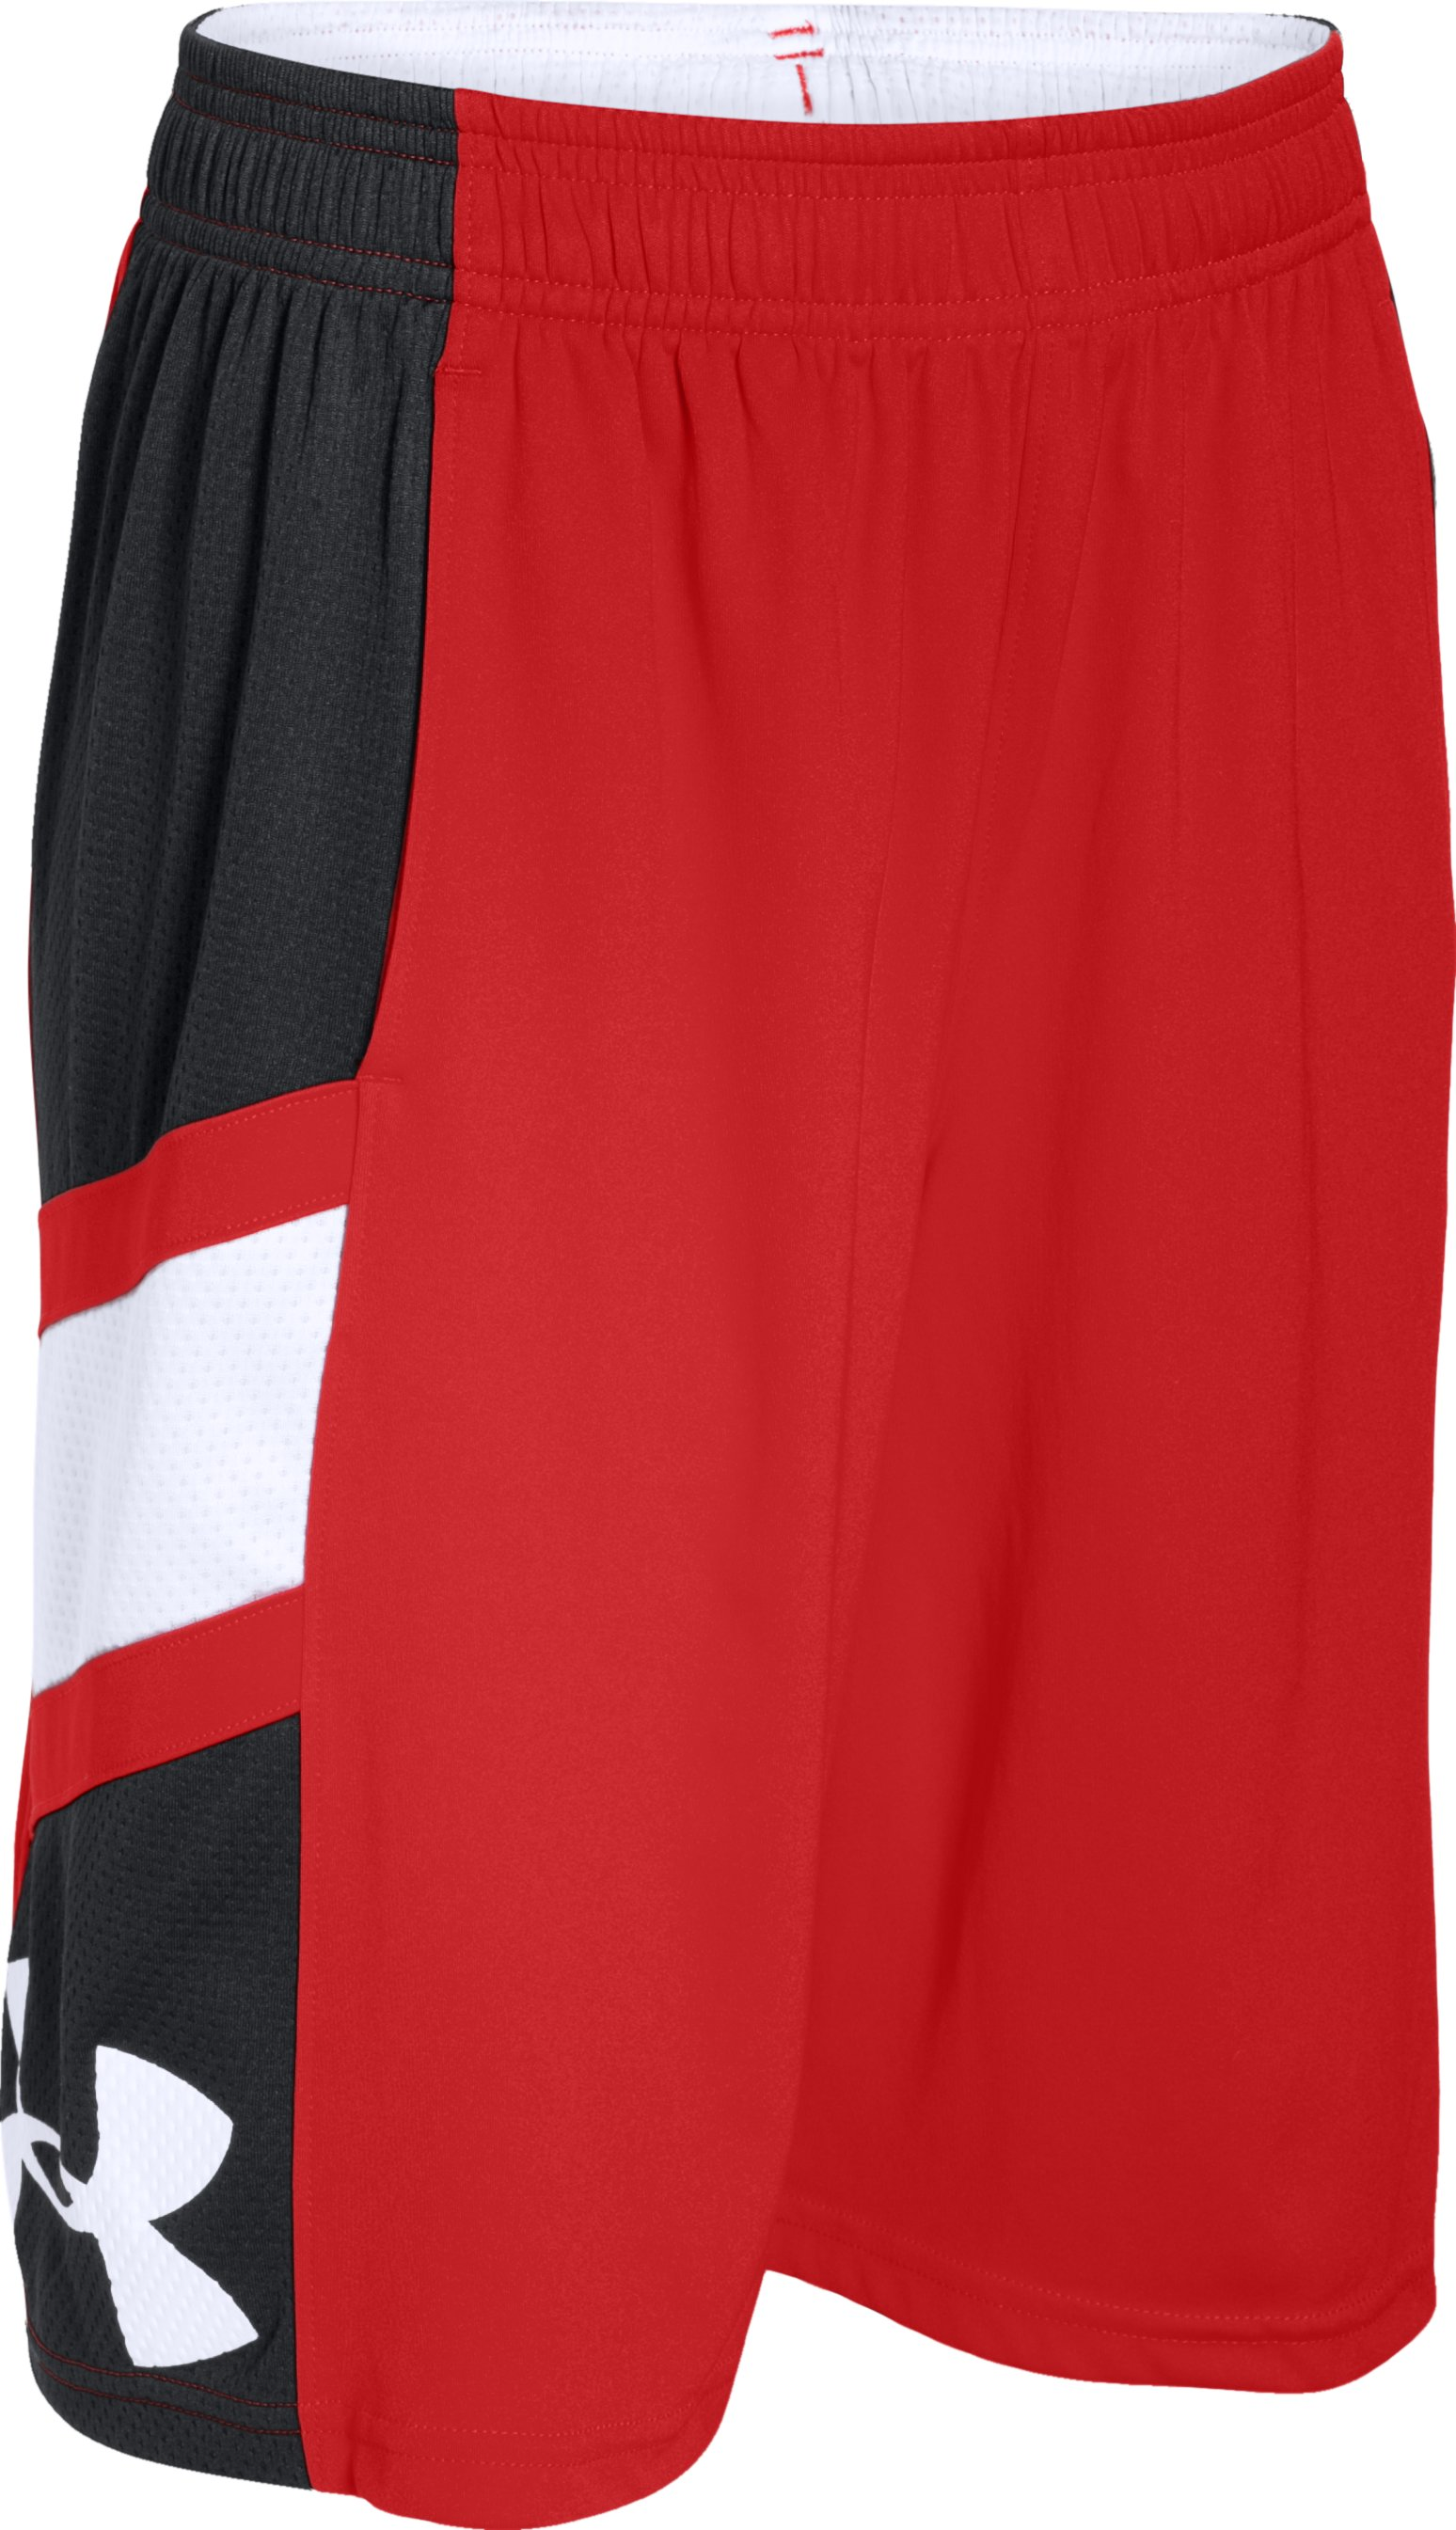 Boys' UA Crossover Basketball Shorts, RISK RED